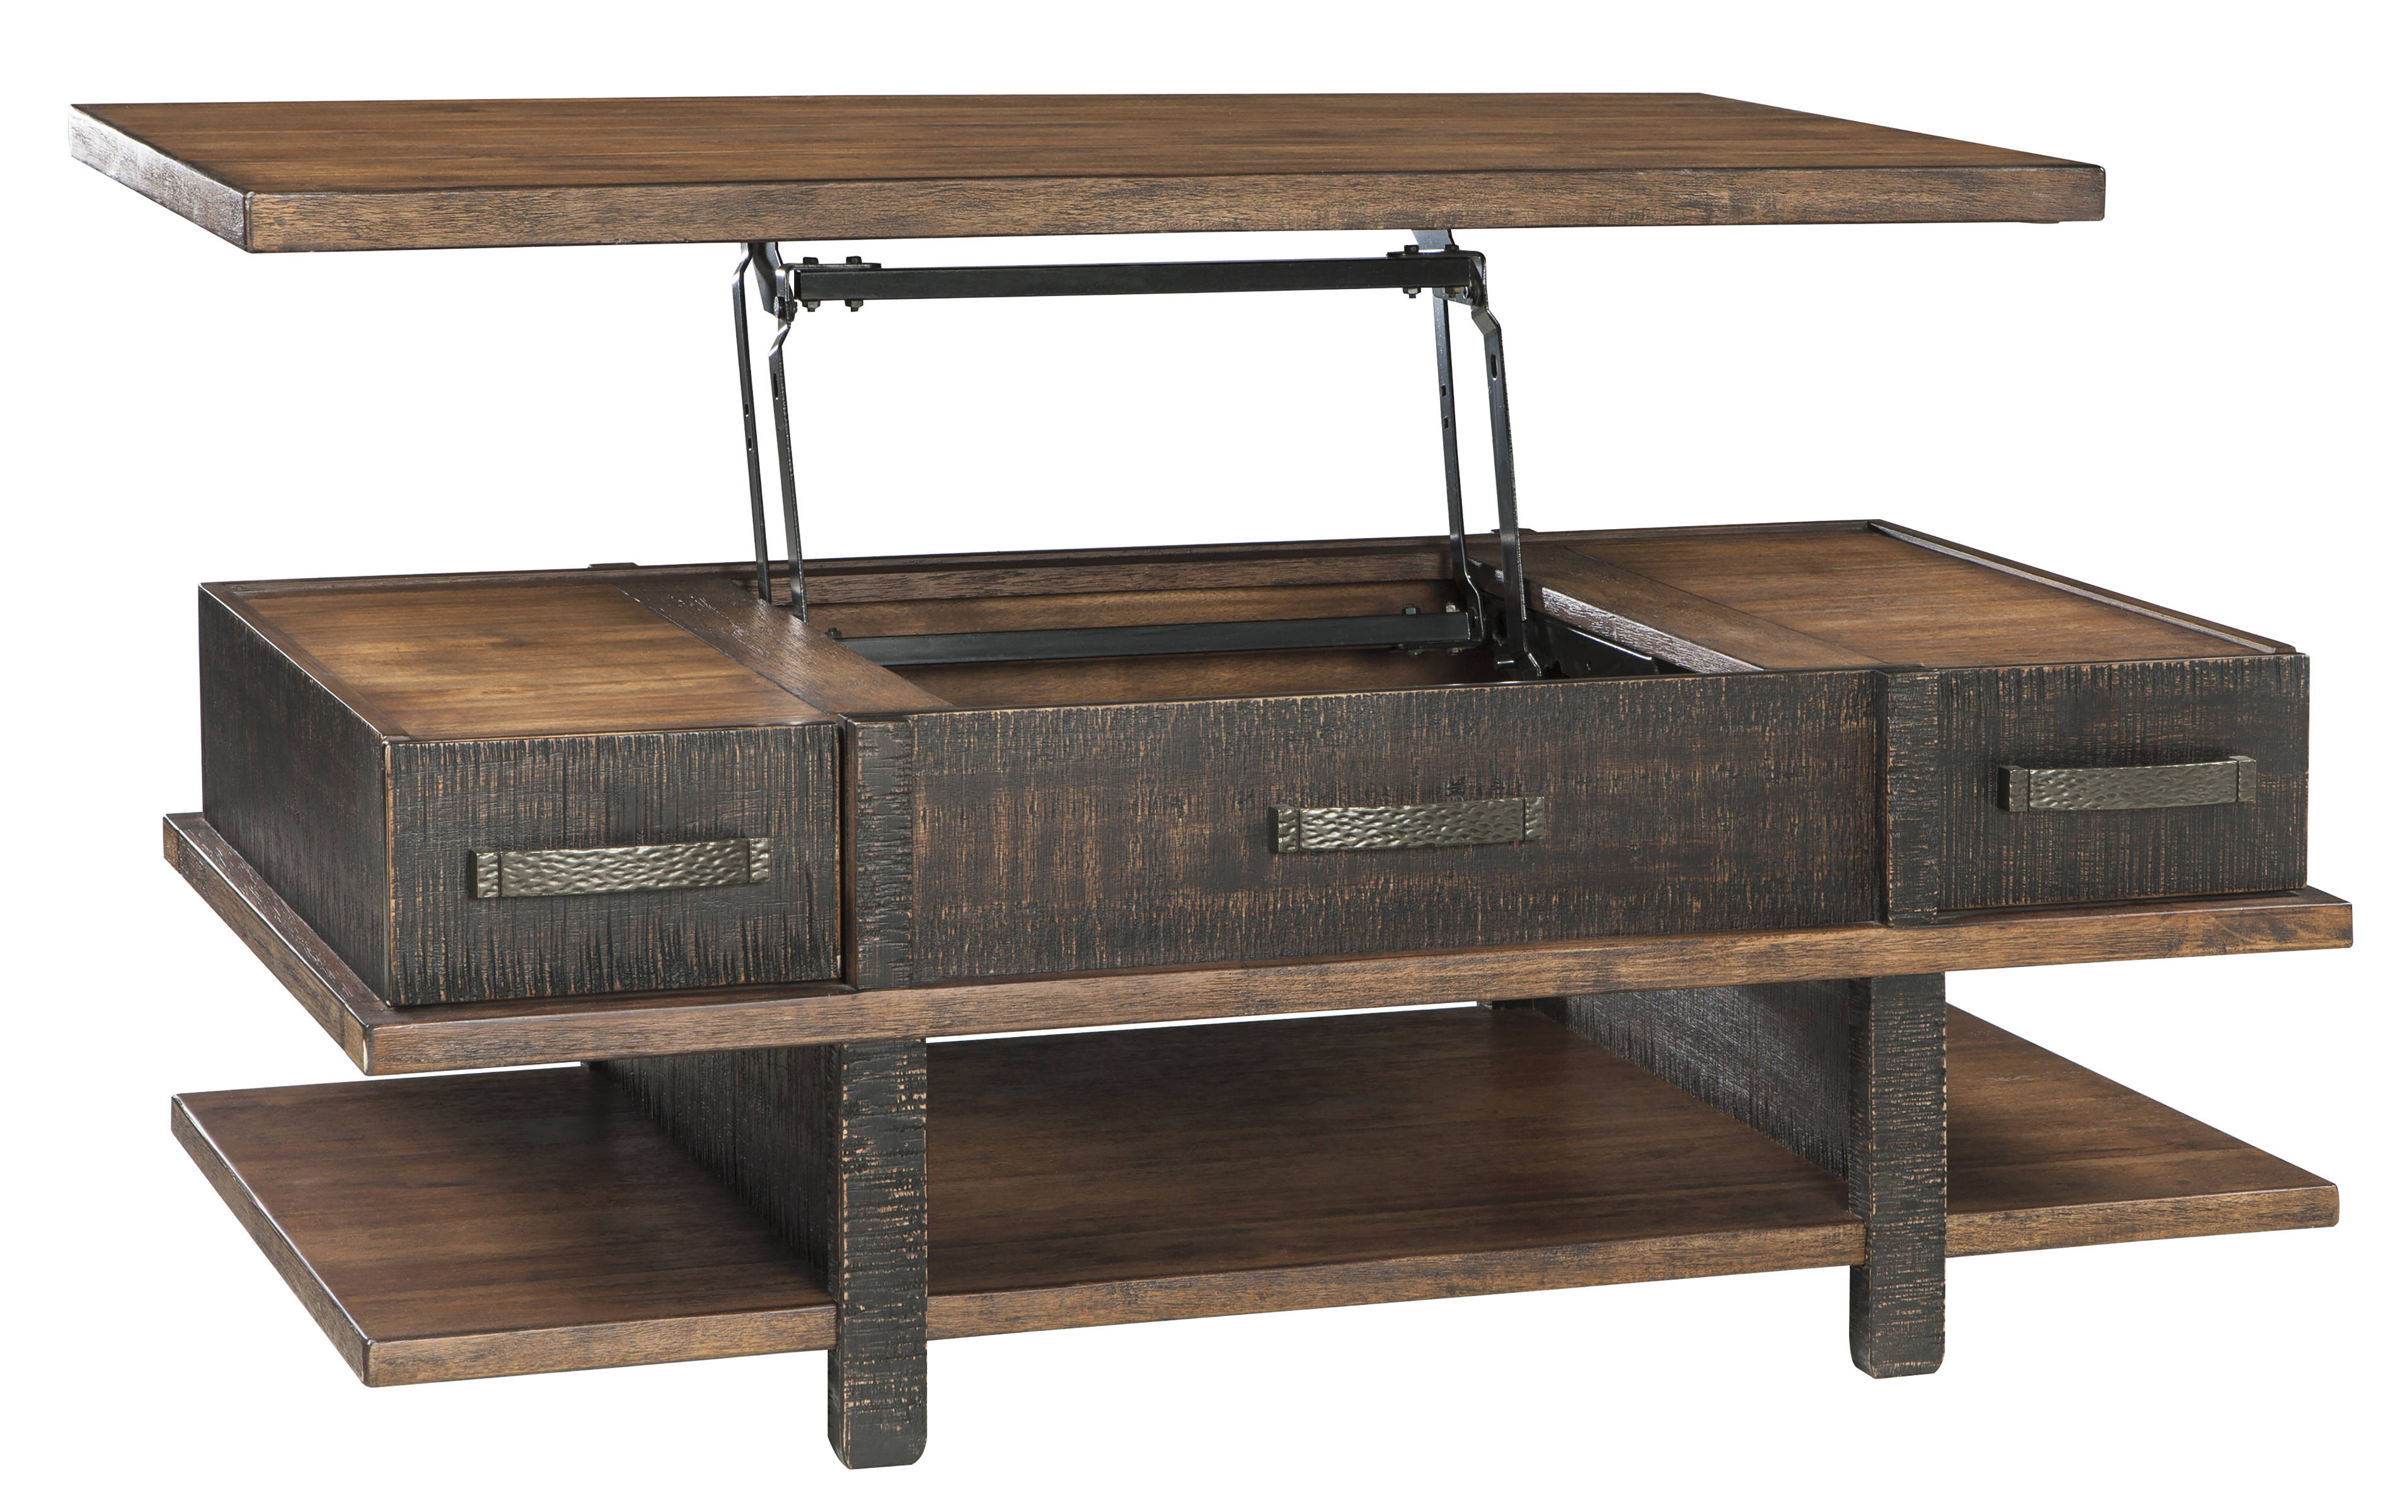 Ashley Furniture Stanah Lift Top Cocktail Table The Classy Home